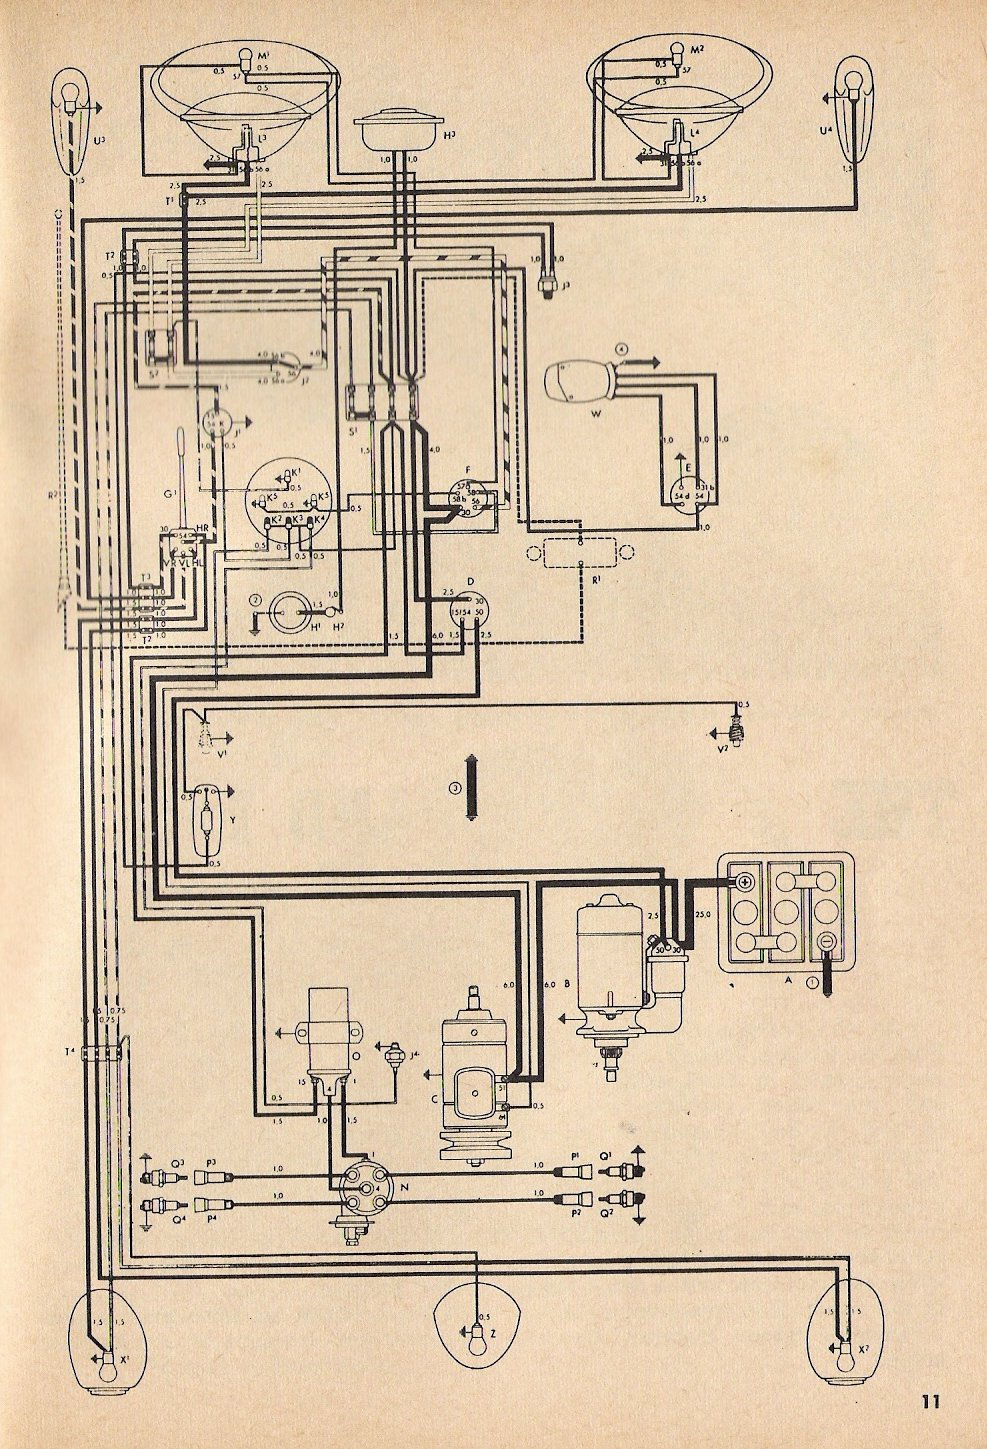 Type 1 Wiring Diagrams Go Back Gt Gallery For Chevy 350 Starter Diagram